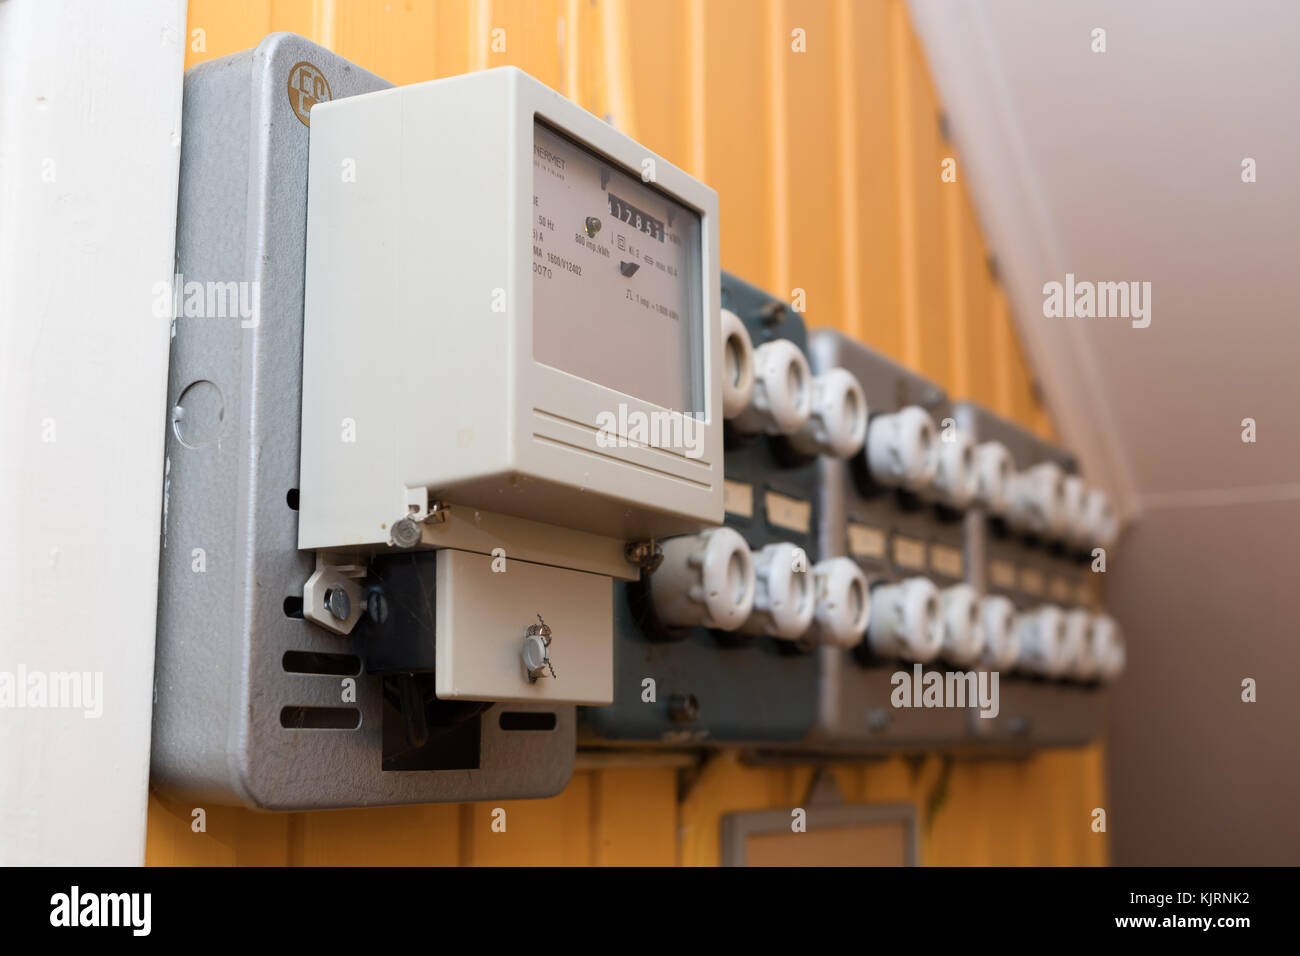 Fuses Stock Photos Images Alamy Old Style Air Conditioner Fuse Box House With Image